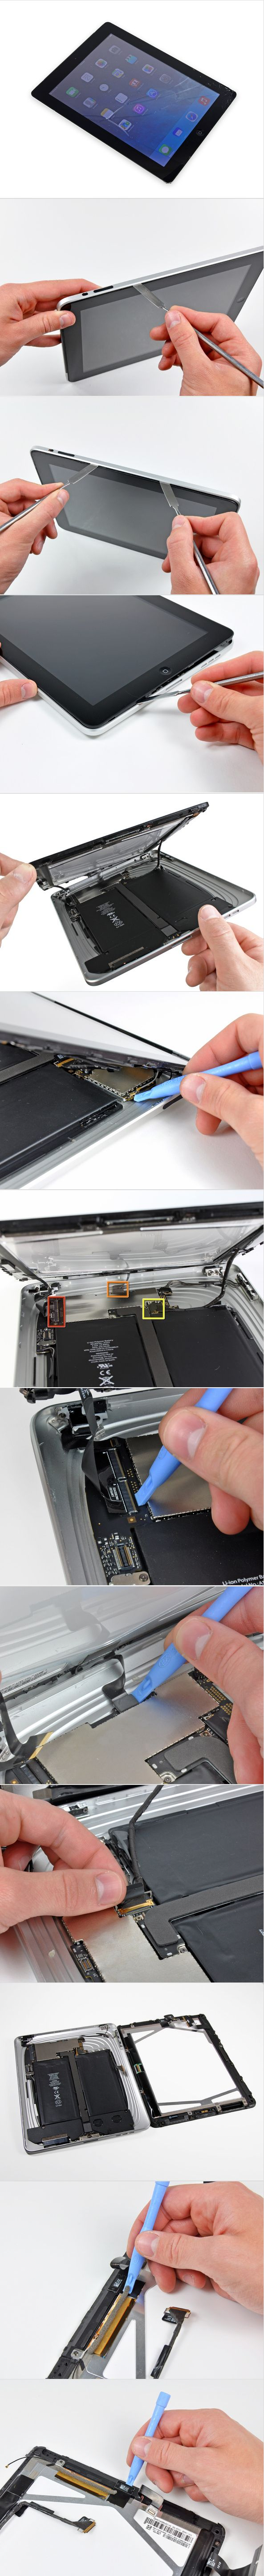 iPad 3G Ambient Light Sensor Replacement